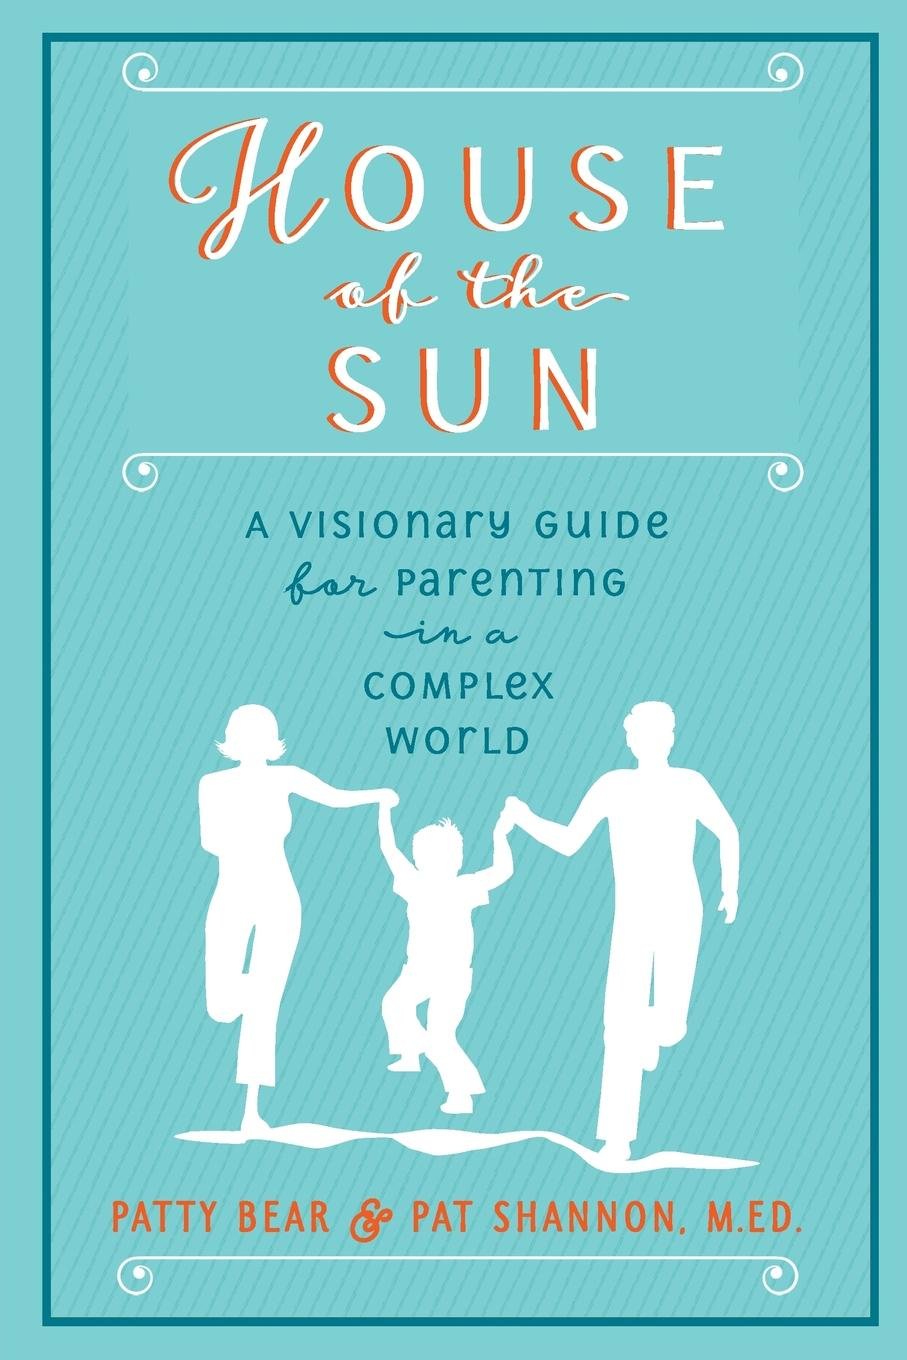 M.Ed. Pat Shannon, Patty Bear House of the Sun. A Visionary Guide for Parenting in a Complex World